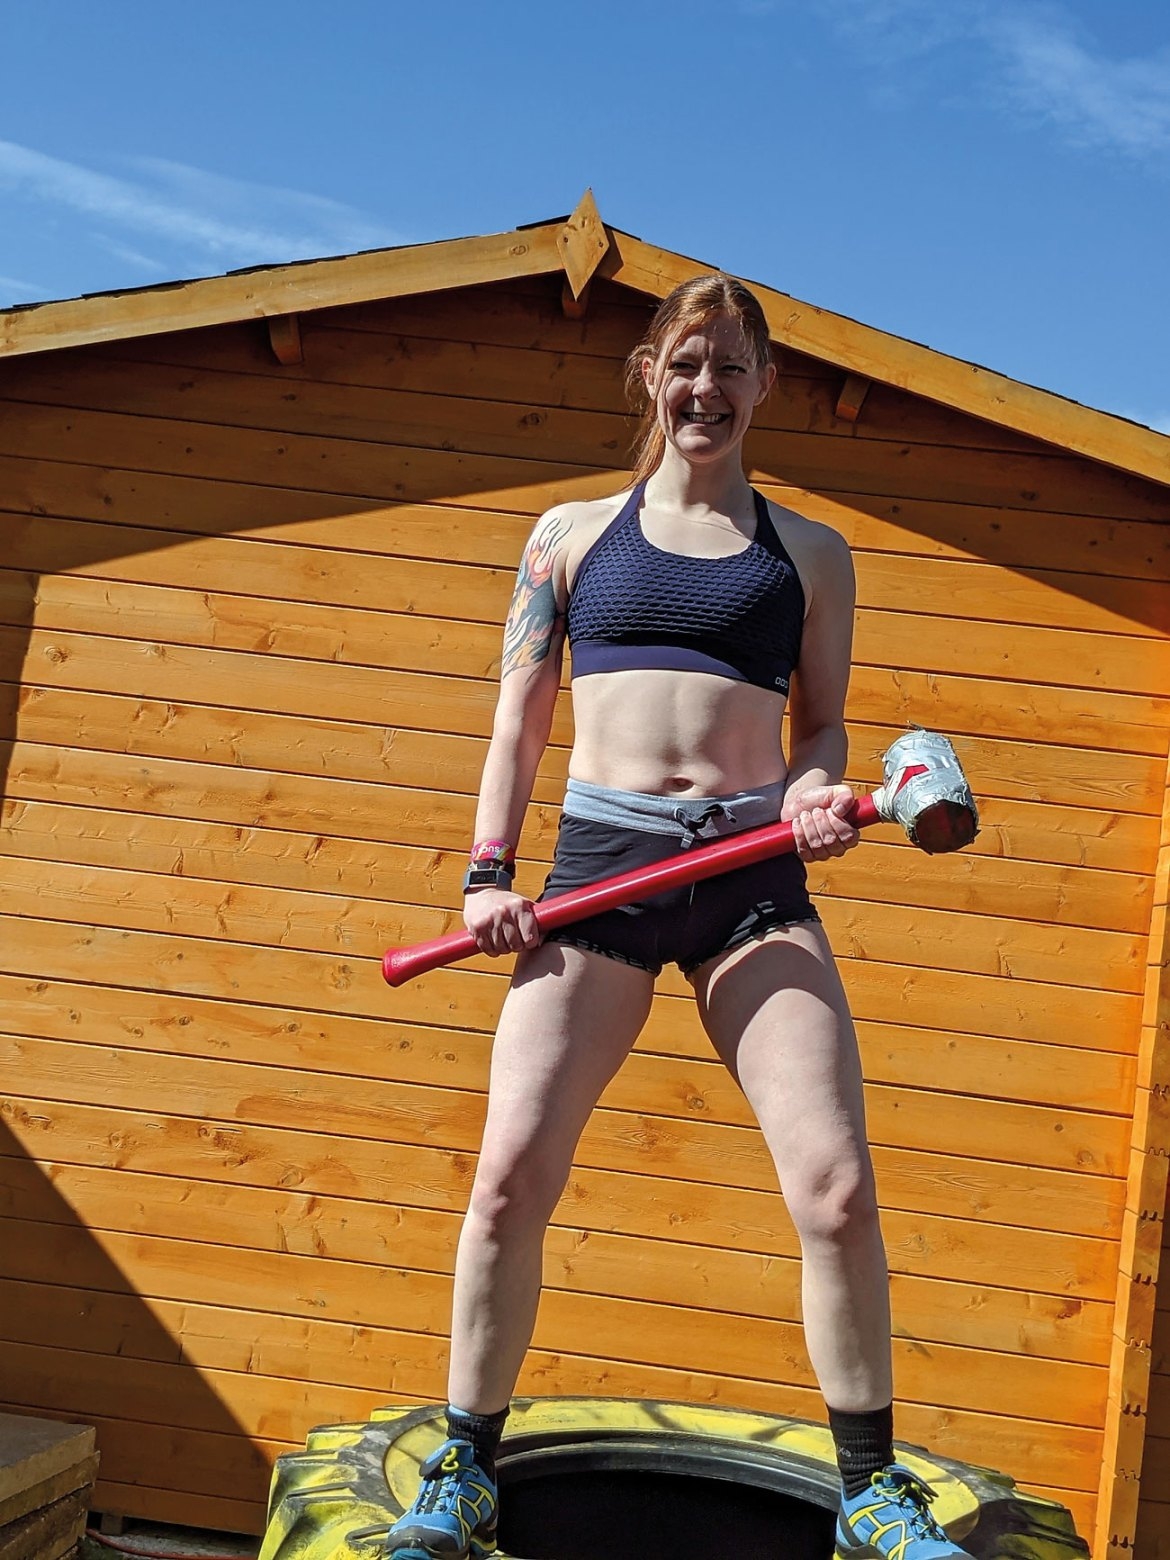 The Covid-19 lockdown didn't stop Bec from pushing herself – she's still been competing in challenges even while at home.